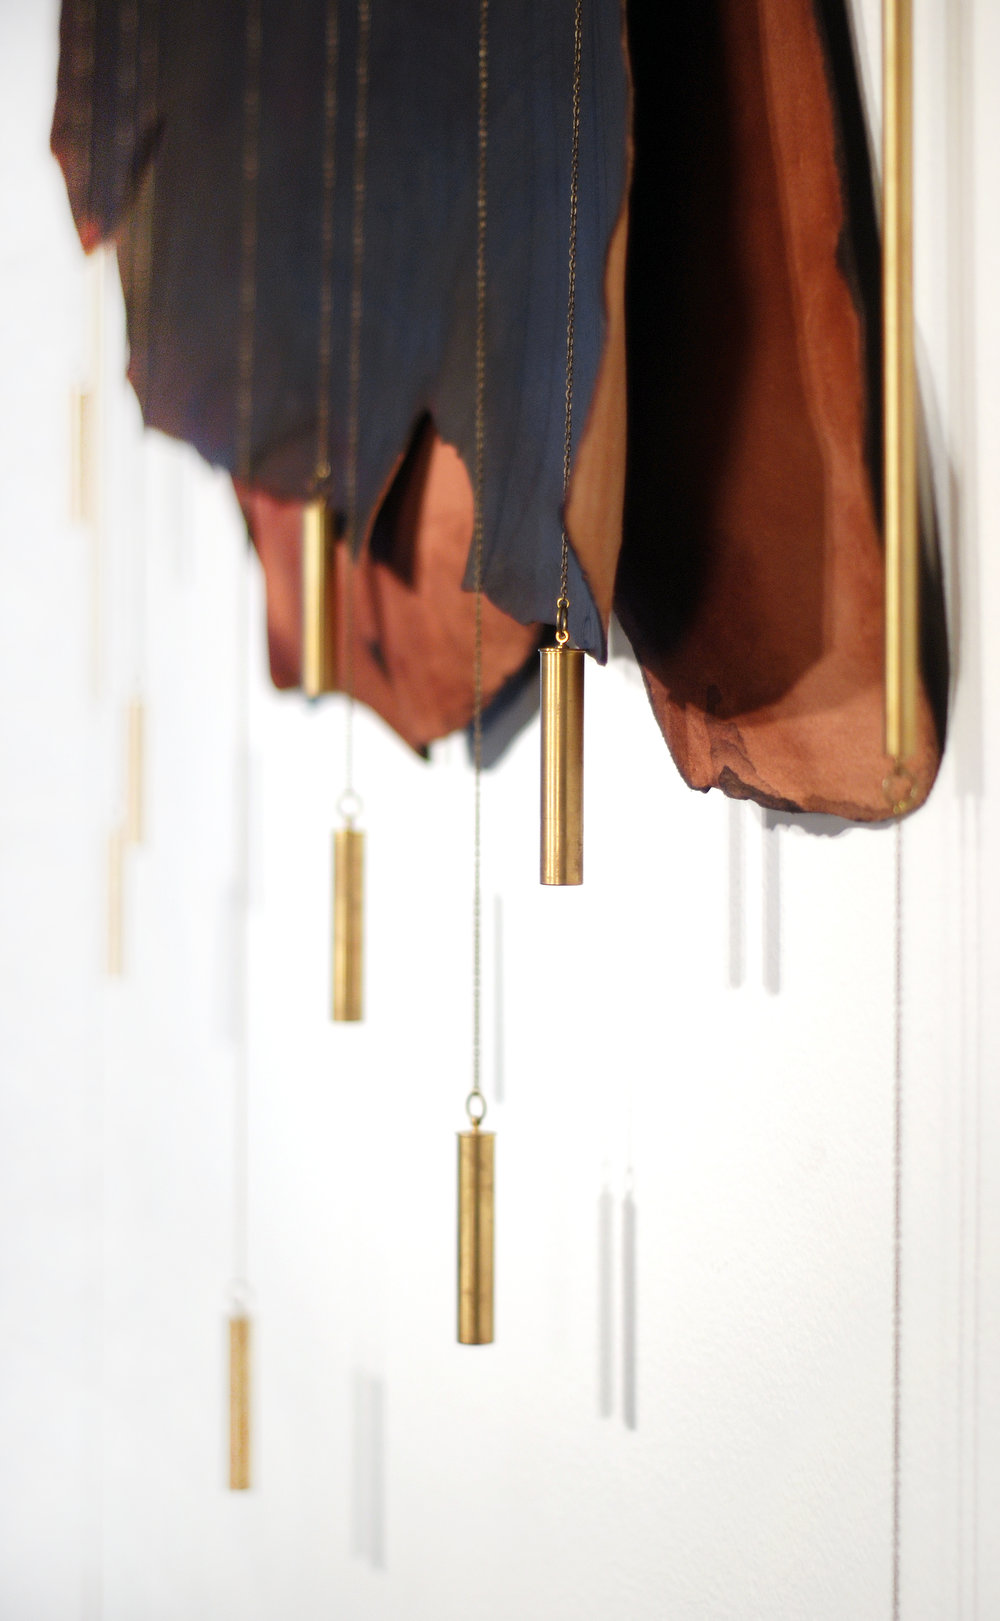 Heather Scott Peterson, Anachrony (detail), 2015, machined brass and wine-boiled leather.